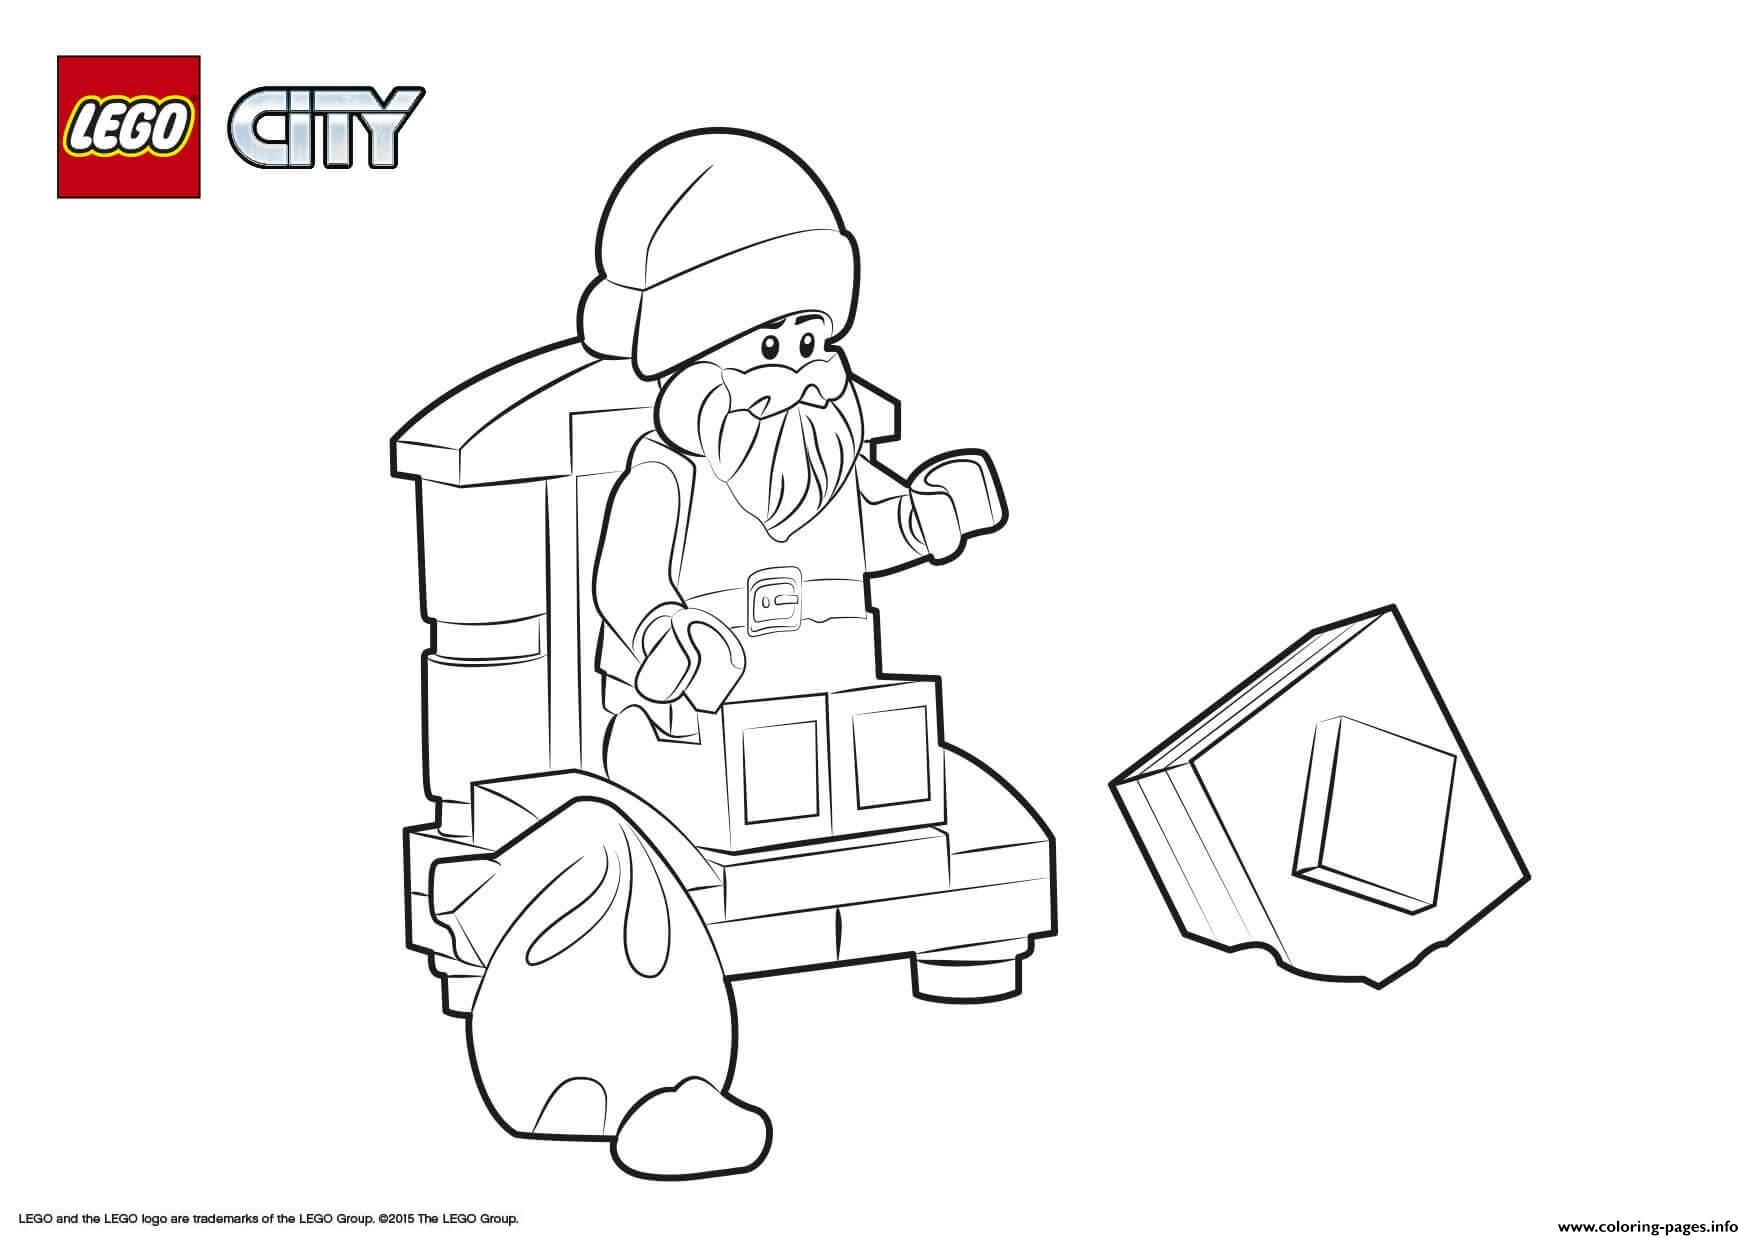 Lego City Santa Claus coloring pages